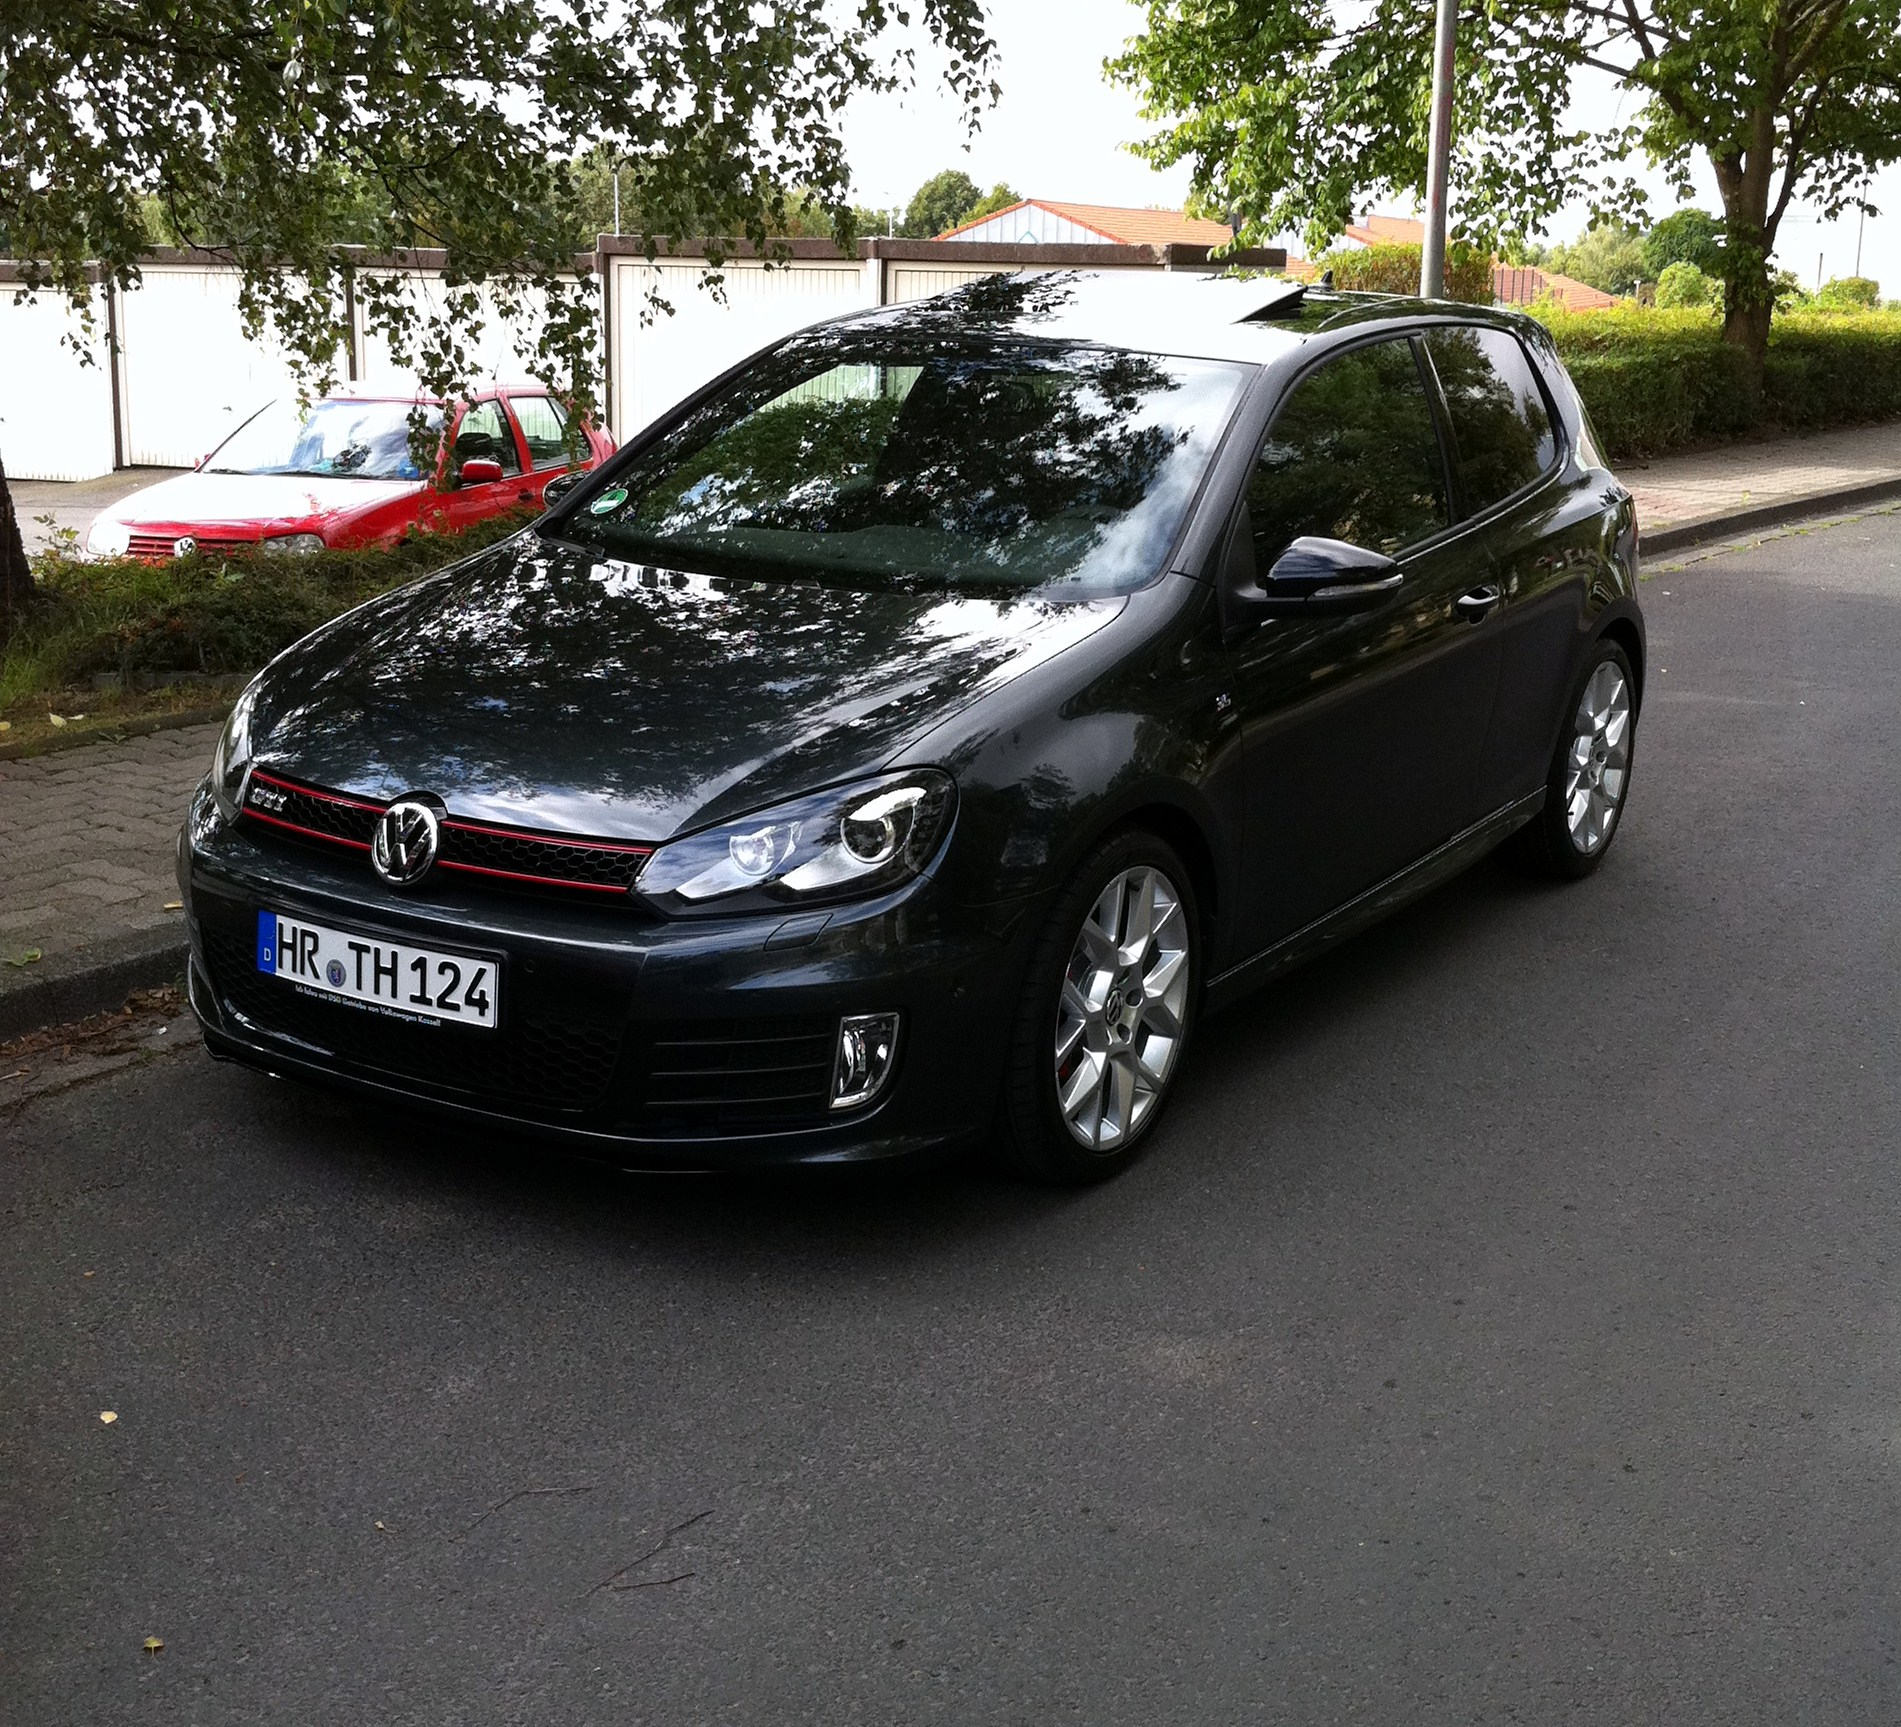 golf 6 1k gti edition 35 40 von 5 picture to pin on pinterest thepinsta. Black Bedroom Furniture Sets. Home Design Ideas